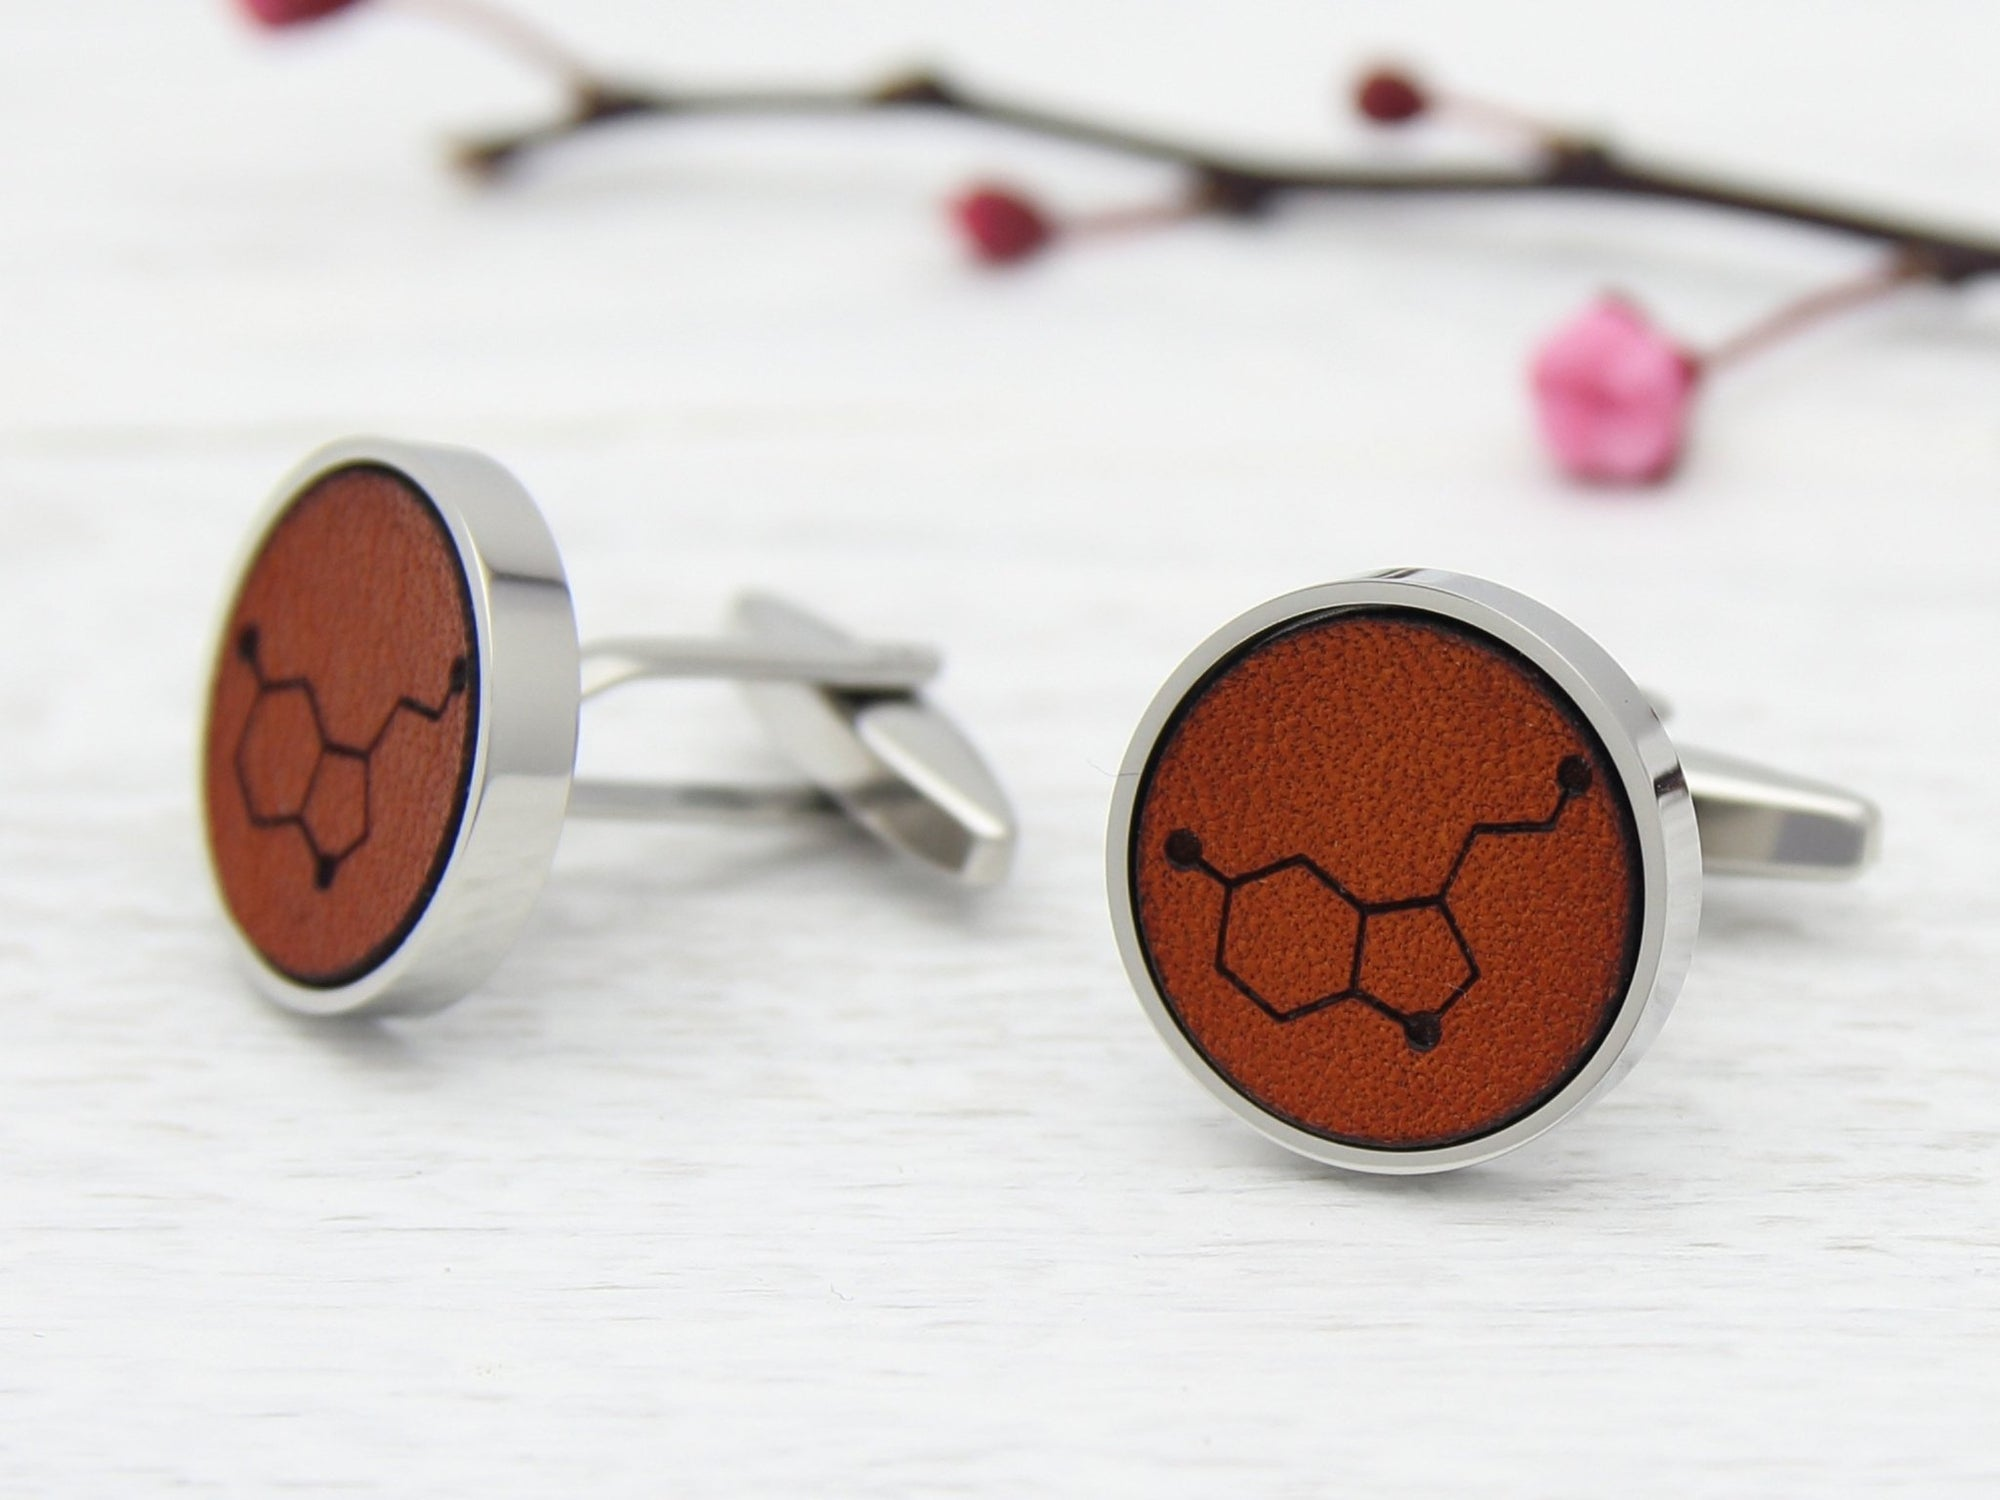 Leather Engraved Cufflinks with Serotonin Molecule